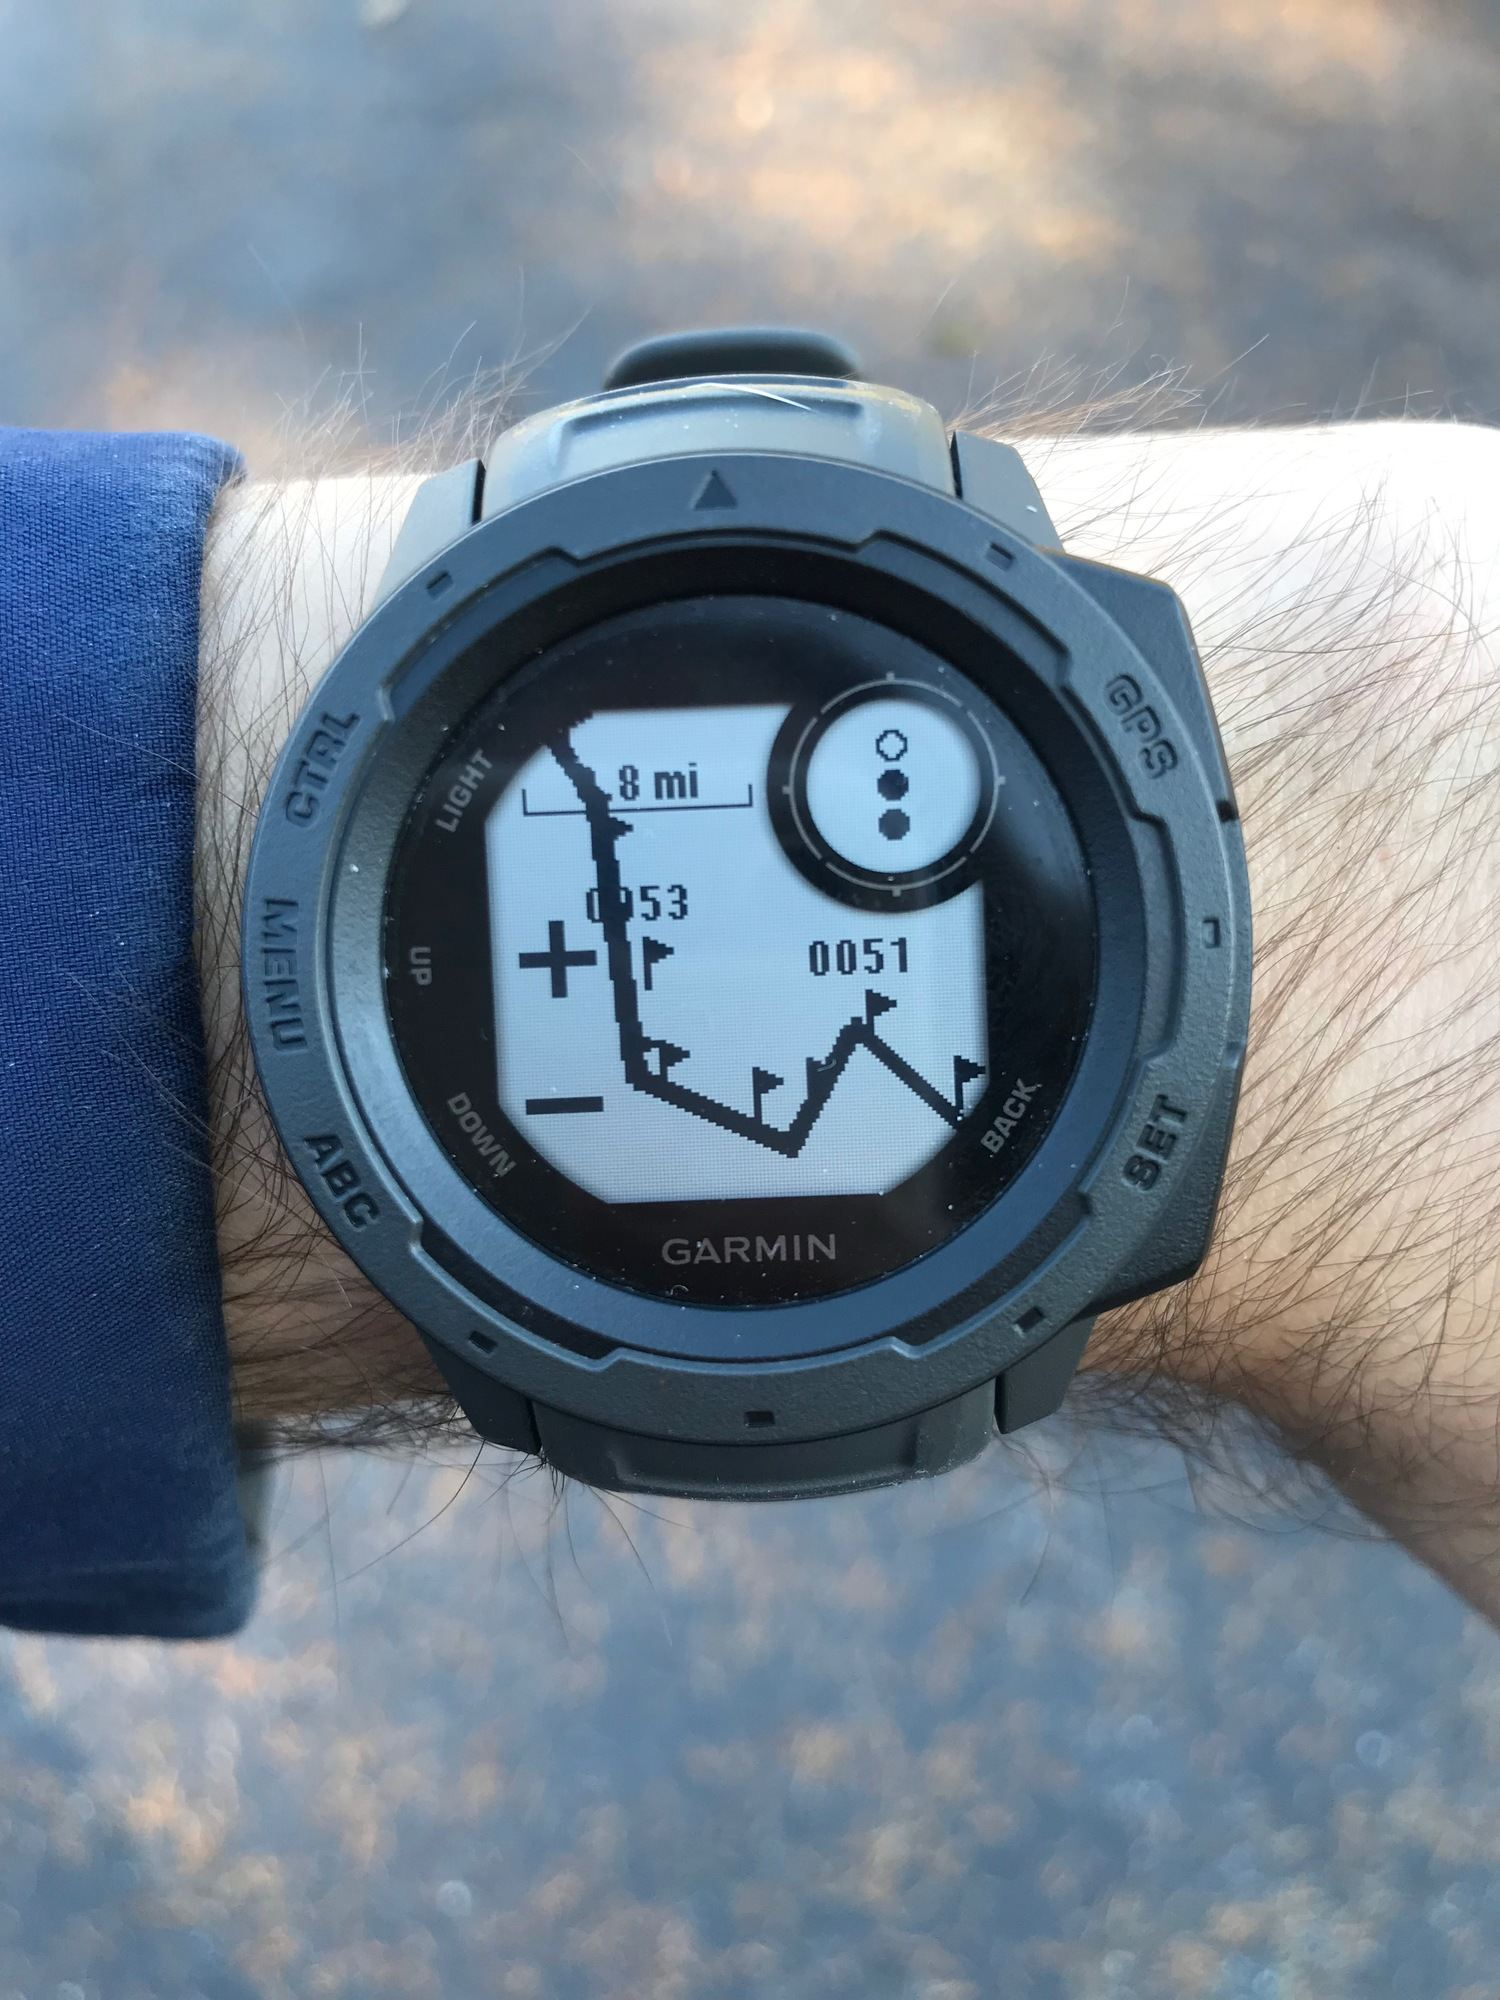 The Garmin Instinct GPS watch can track data and stats on day hikes, workouts, and even long distance hikes…or so we are testing! Here the watch shows the climb out of the Grand Canyon. Photo courtesy Mike Unger.